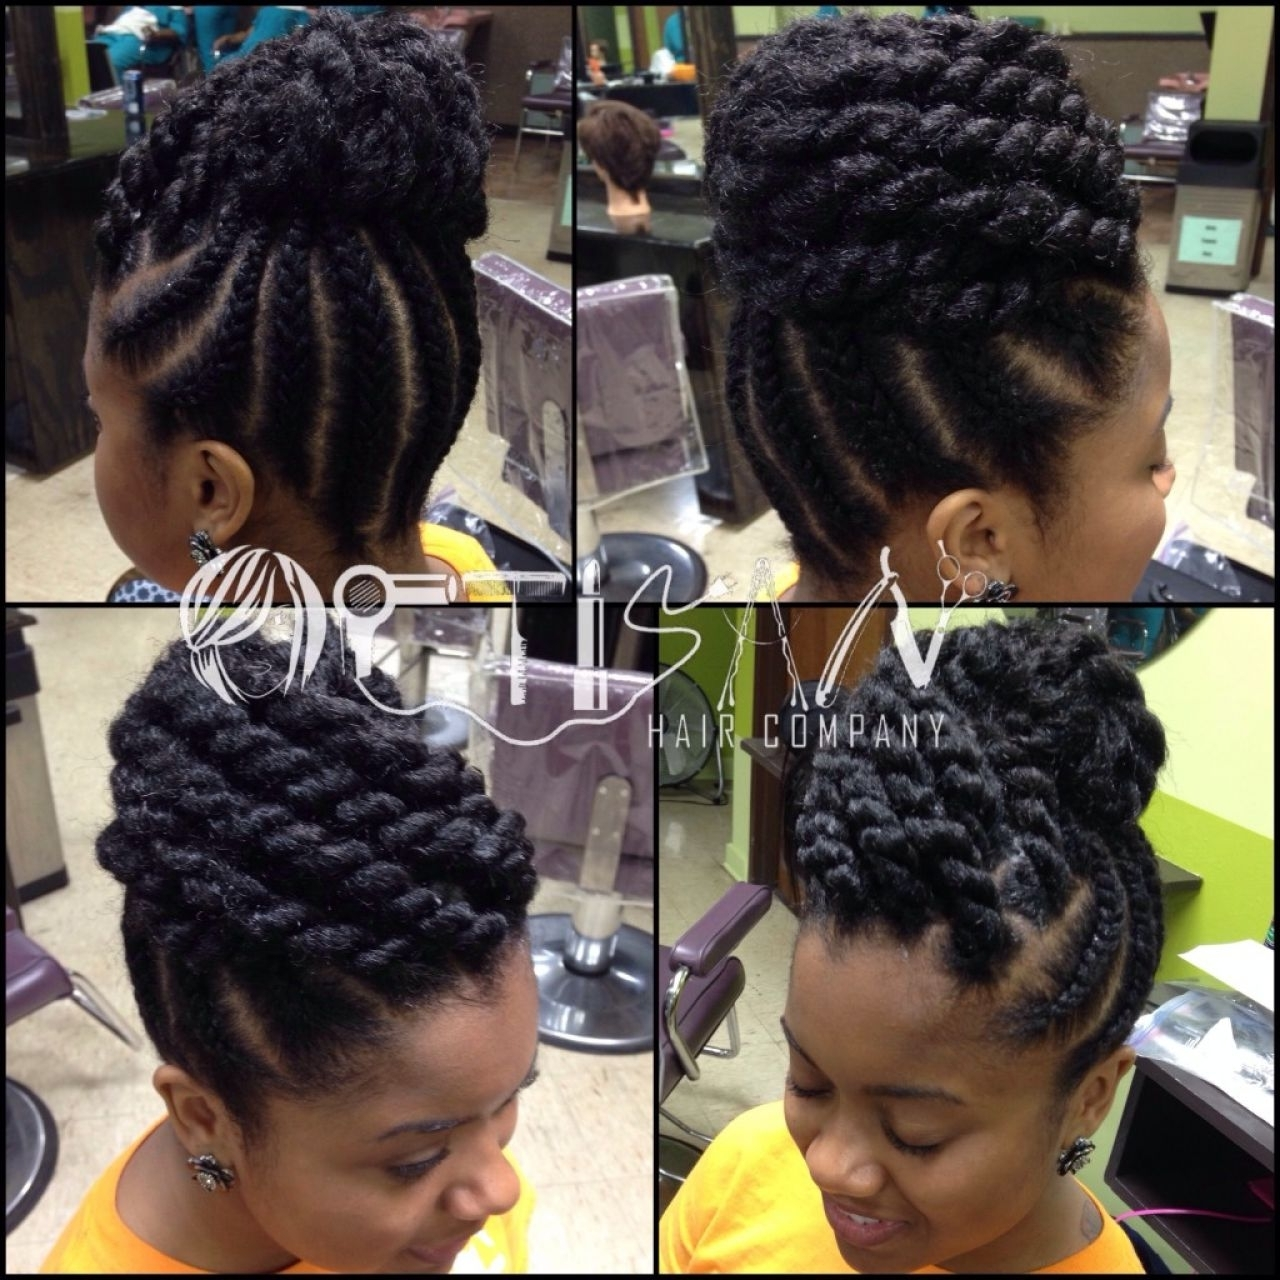 Don't Know What To Do With Your Hair: Check Out This Trendy Ghana Pertaining To African Cornrows Updo Hairstyles (Gallery 2 of 15)